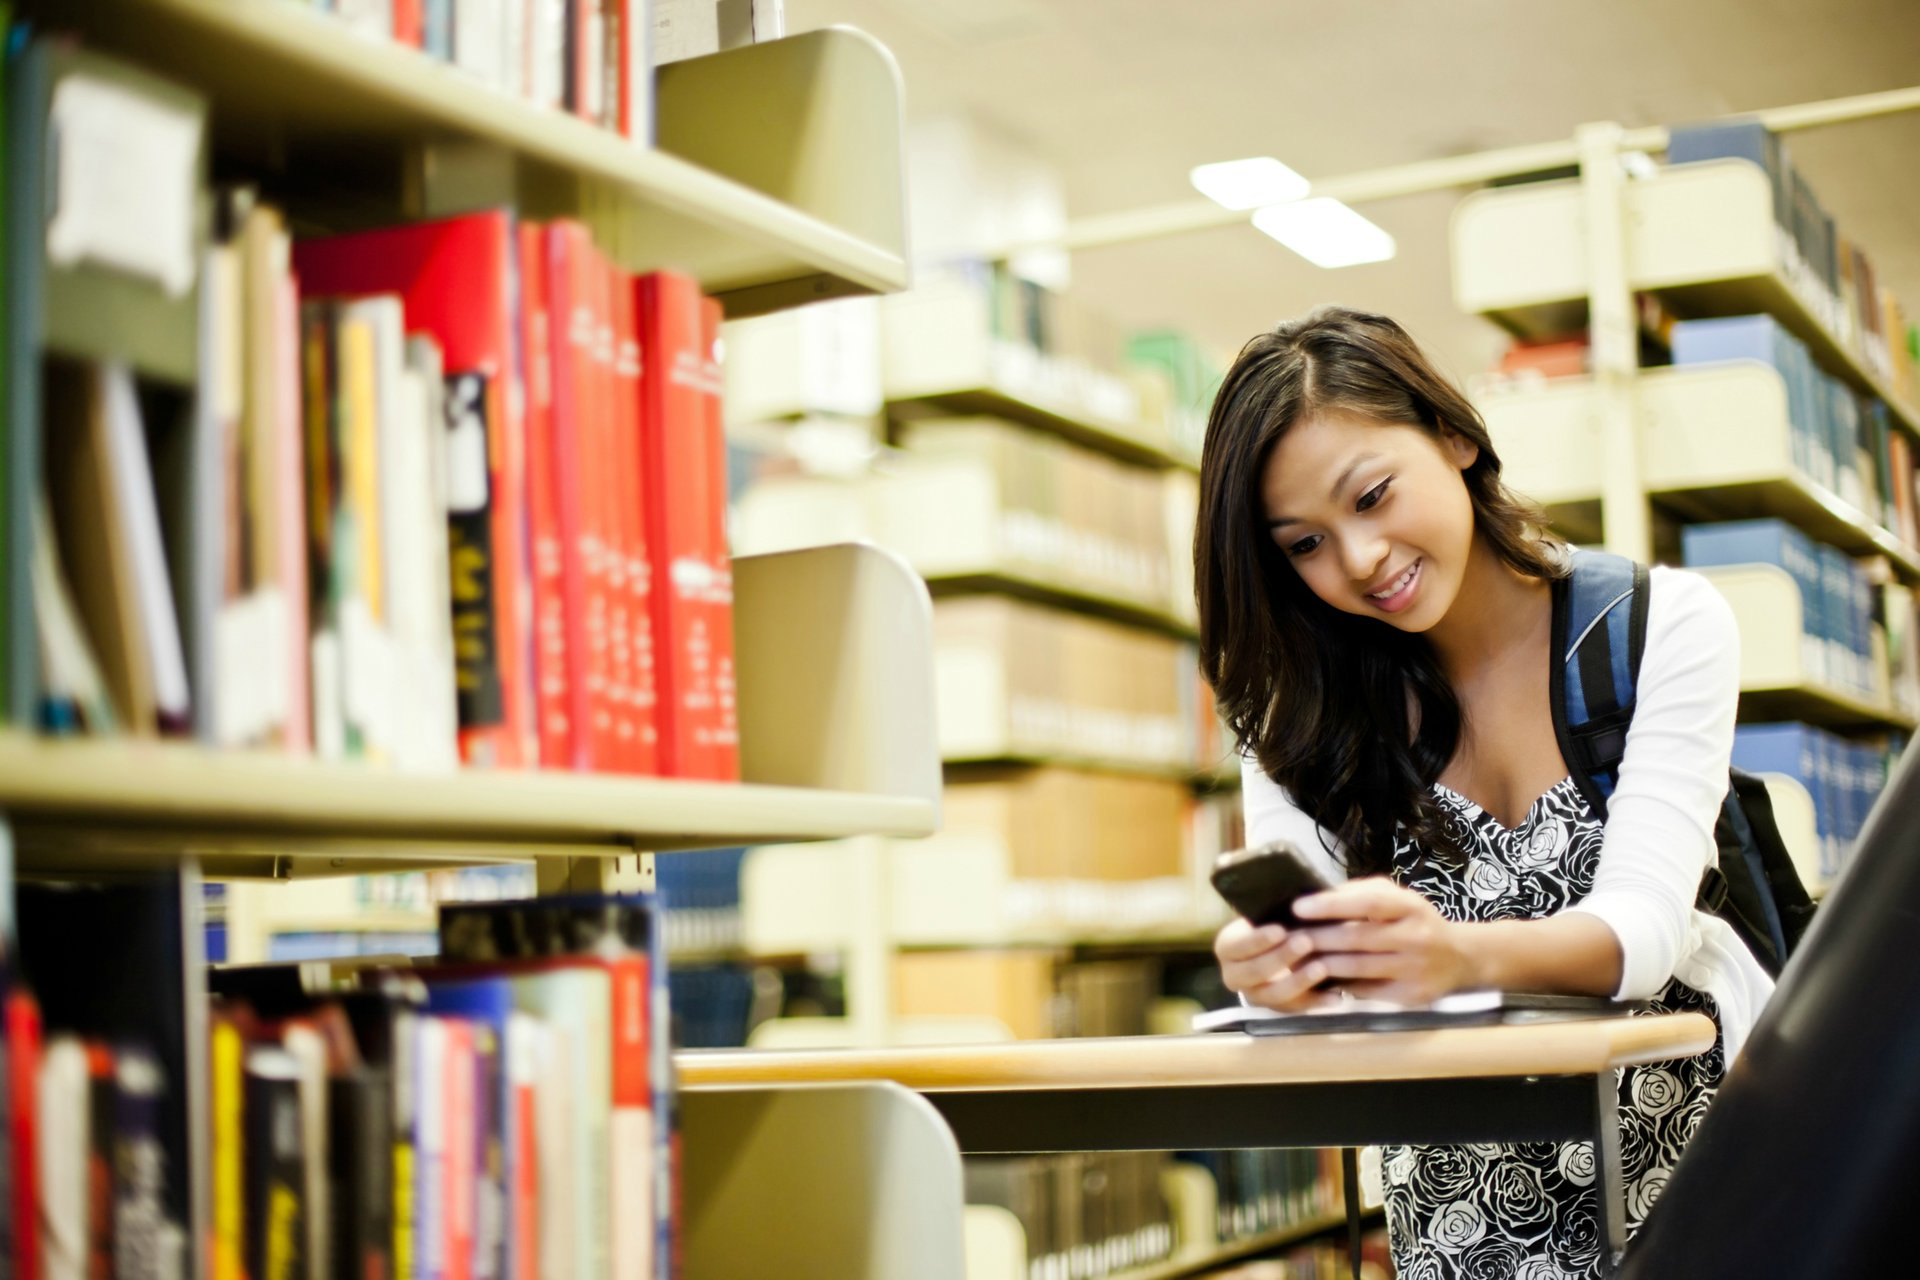 Woman student in library, looking at cellphone